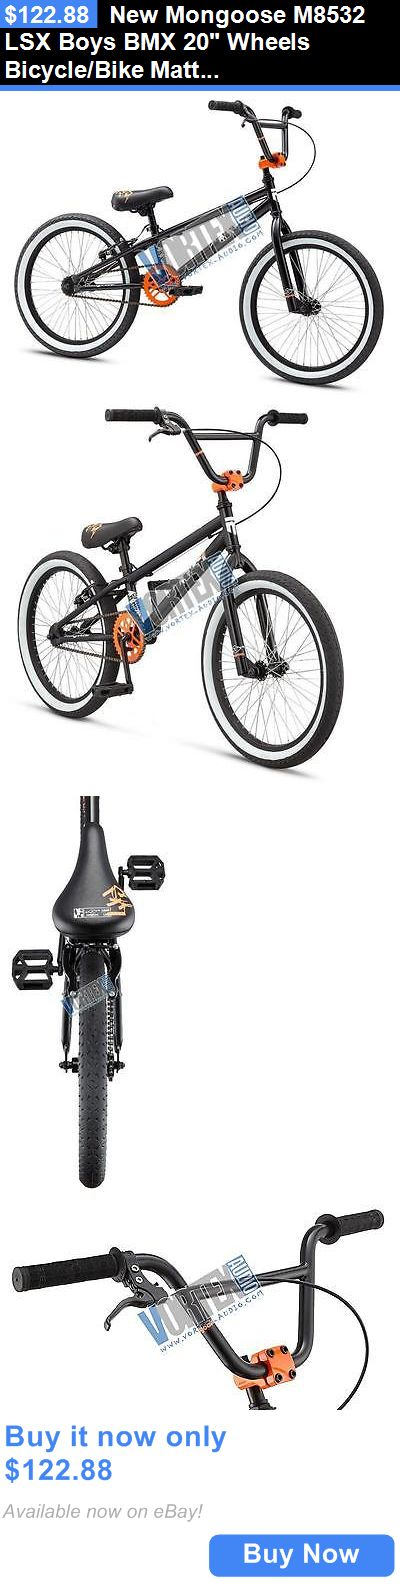 bicycles: New Mongoose M8532 Lsx Boys Bmx 20 Wheels Bicycle/Bike Matte Black Steel Frame BUY IT NOW ONLY: $122.88